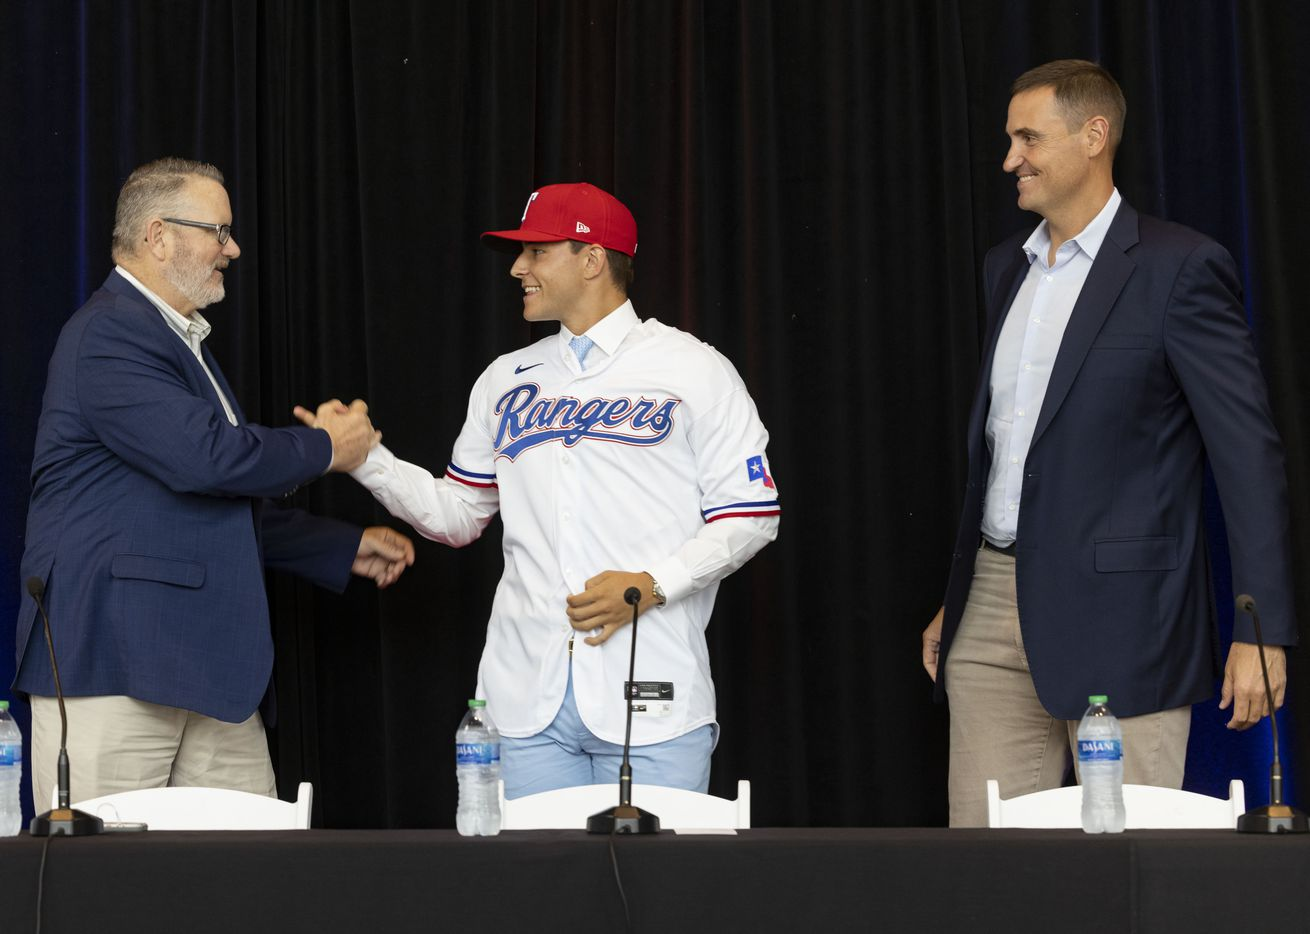 Kip Fagg (left), Texas Rangers Senior Director of Amateur Scouting, Chris Young (right), Rangers Executive Vice President and General Manager, congratulate Jack Leiter from Vanderbilt University after putting on his Texas Rangers jersey following the announcement of his signing on Tuesday, July 27, 2021, at Globe Life Field in Arlington. Leiter was the club's 2021 MLB Draft first round selection and the draft's second overall pick. (Juan Figueroa/The Dallas Morning News)